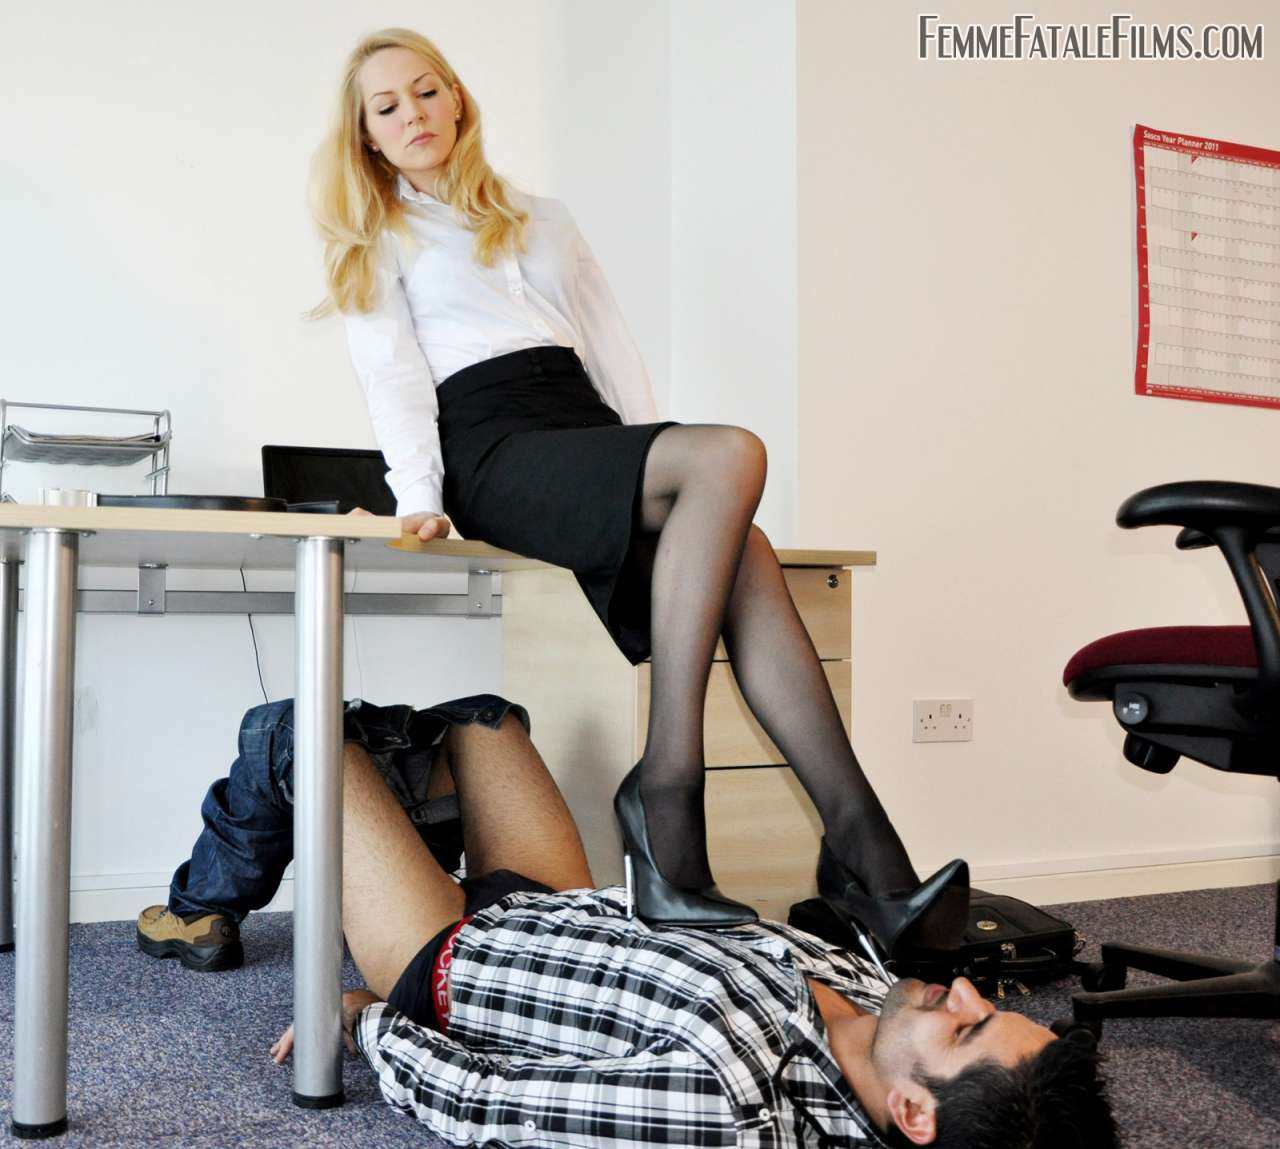 Picture #5 of Computer guy is punished for looking sexy boss under the skirt: he is trampled, smothered and crushed in between sexy legs